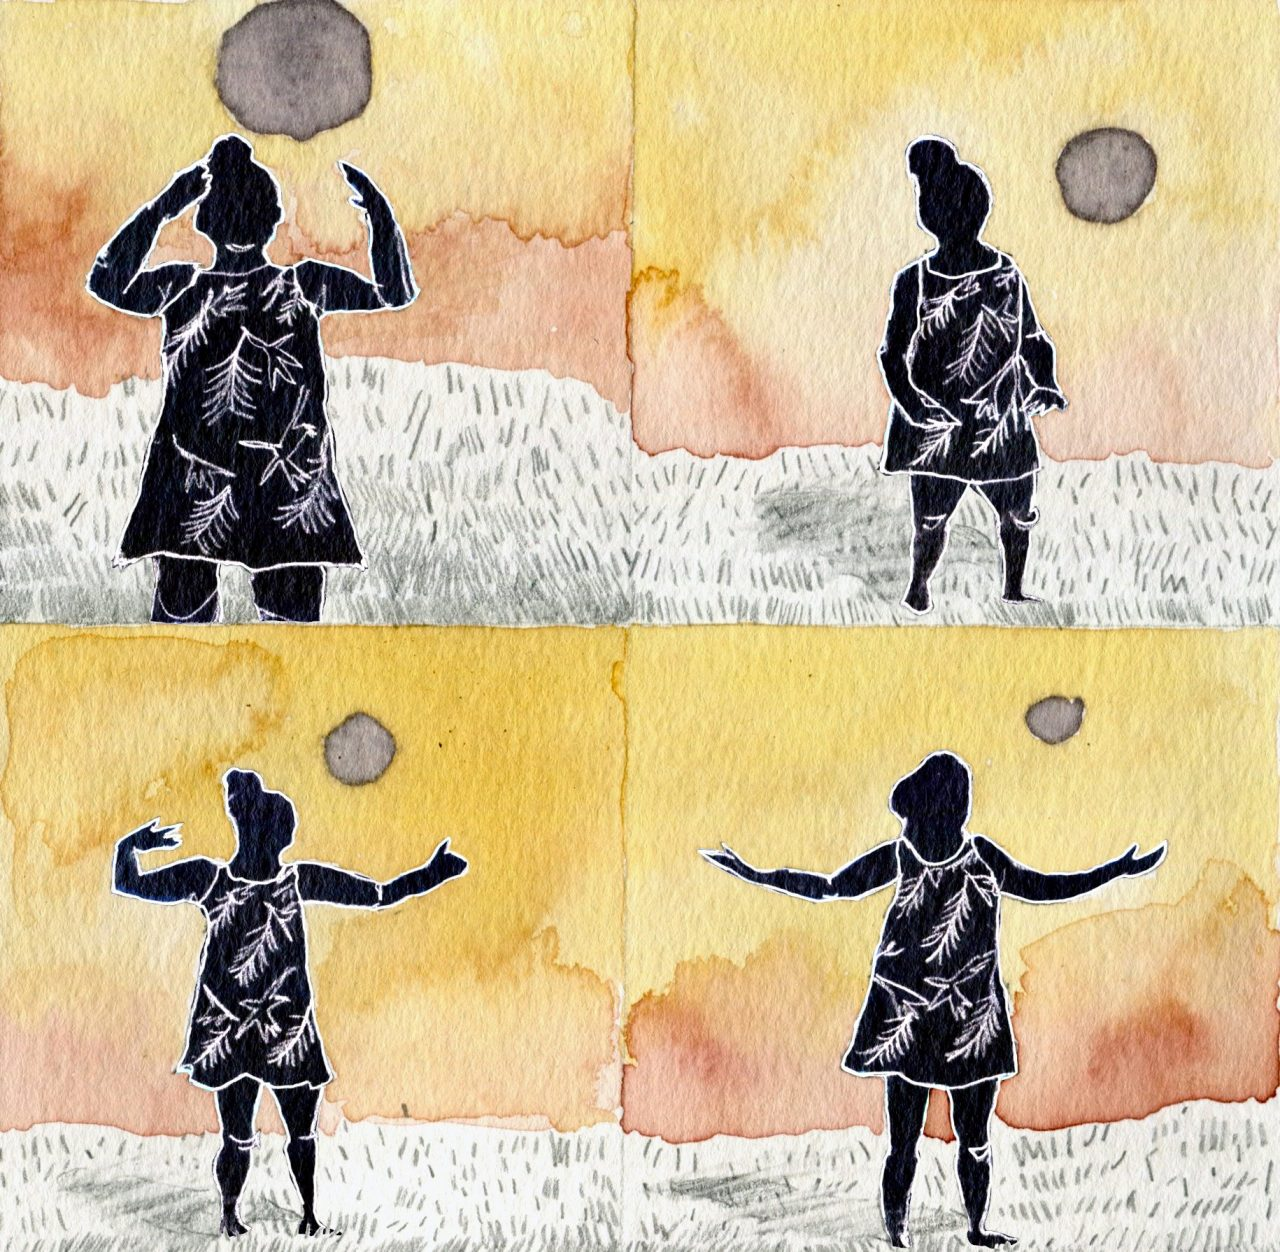 A digital-ink illustration in four quadrants of a pregnant woman doing Qi Gong. Her body and clothes are all painted black with white outlines. In each quadrant, she holds a different Qi Gong posture with a golden/pink sky in the background. The ground is white with graphite marks depicting grass.